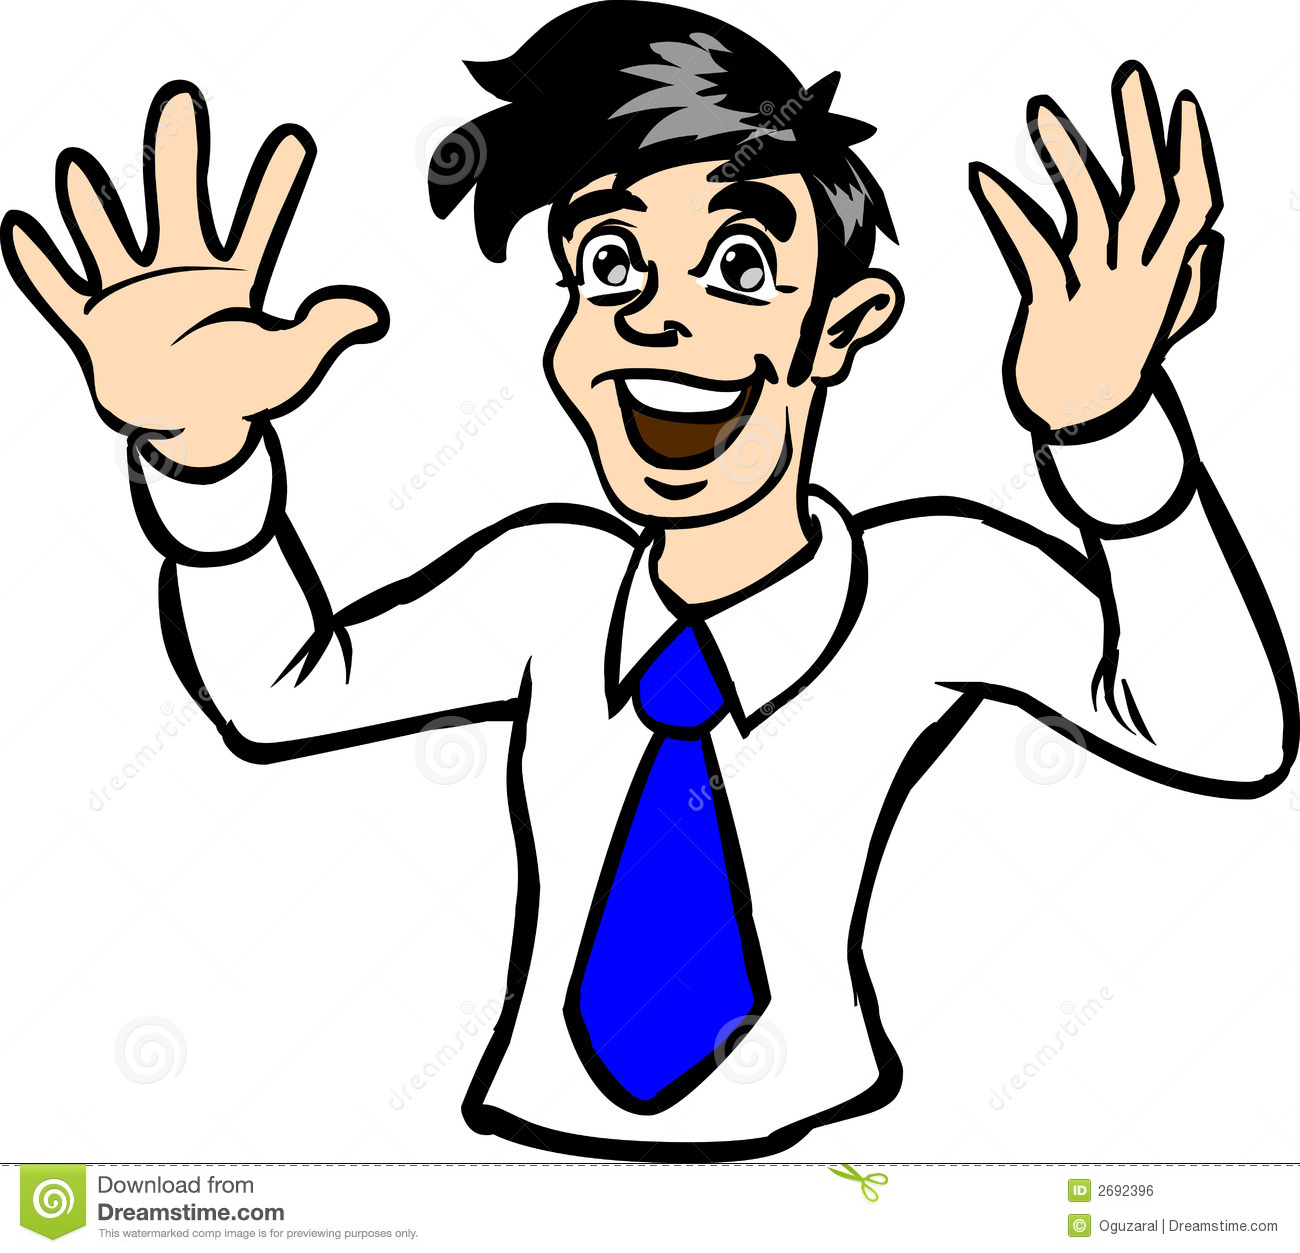 Happy person clip art. Excited clipart pleased